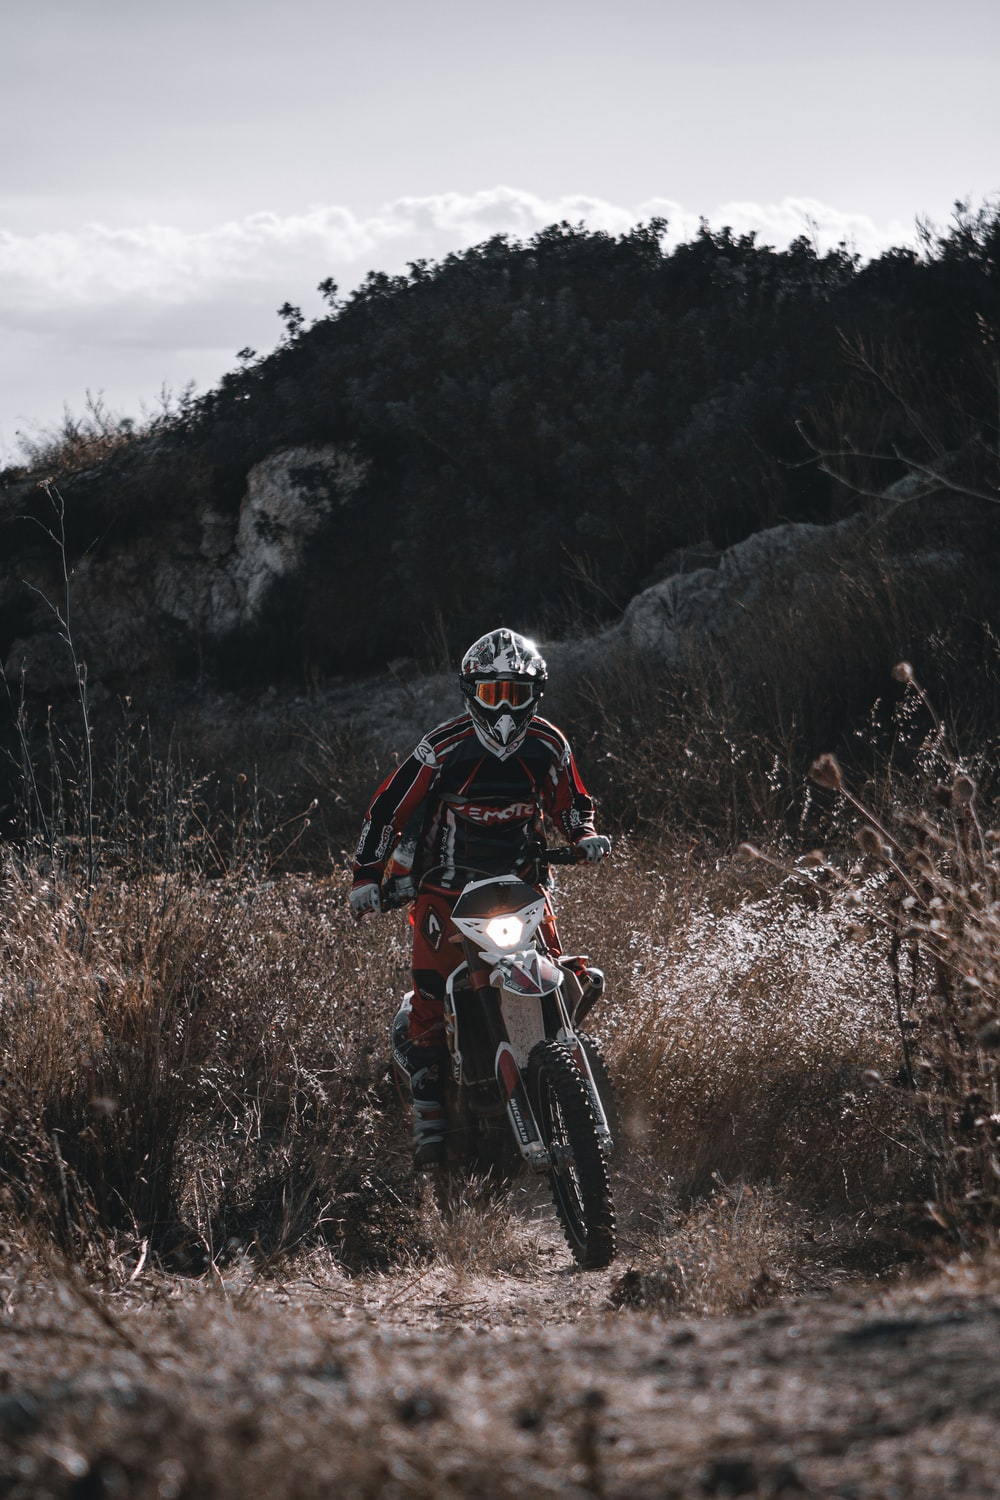 man in red and black motorcycle suit riding on red and white motocross dirt bike